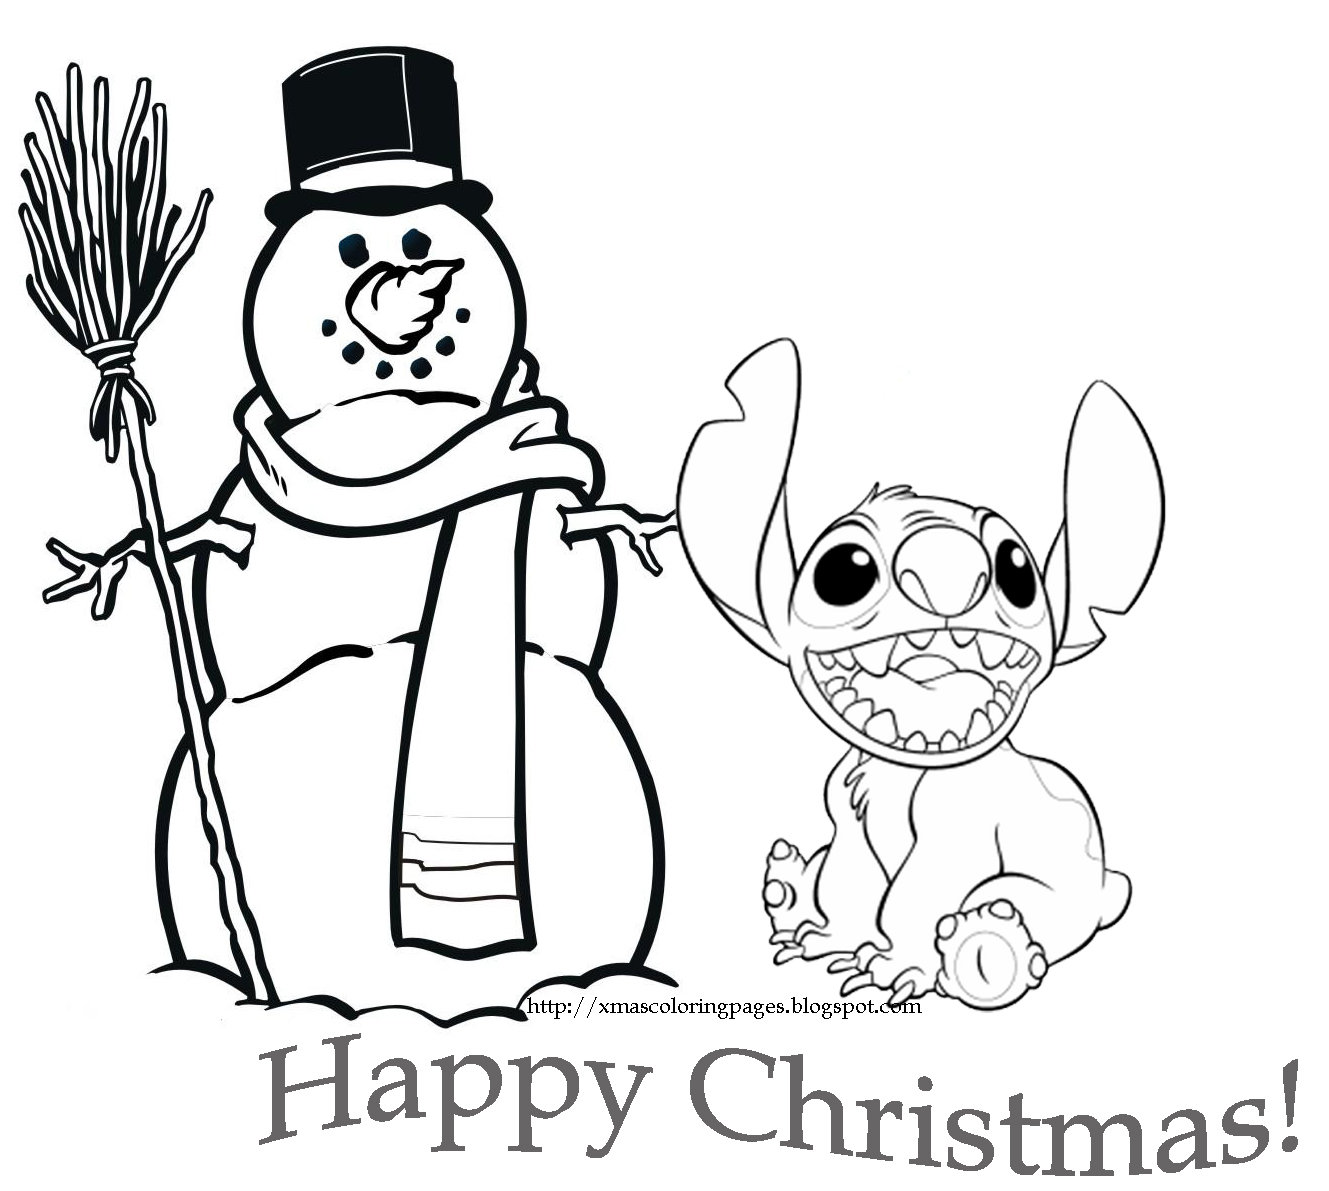 Free Disney Christmas Colouring Pages With Cool Mickey Coloring Sheet Vitlt New